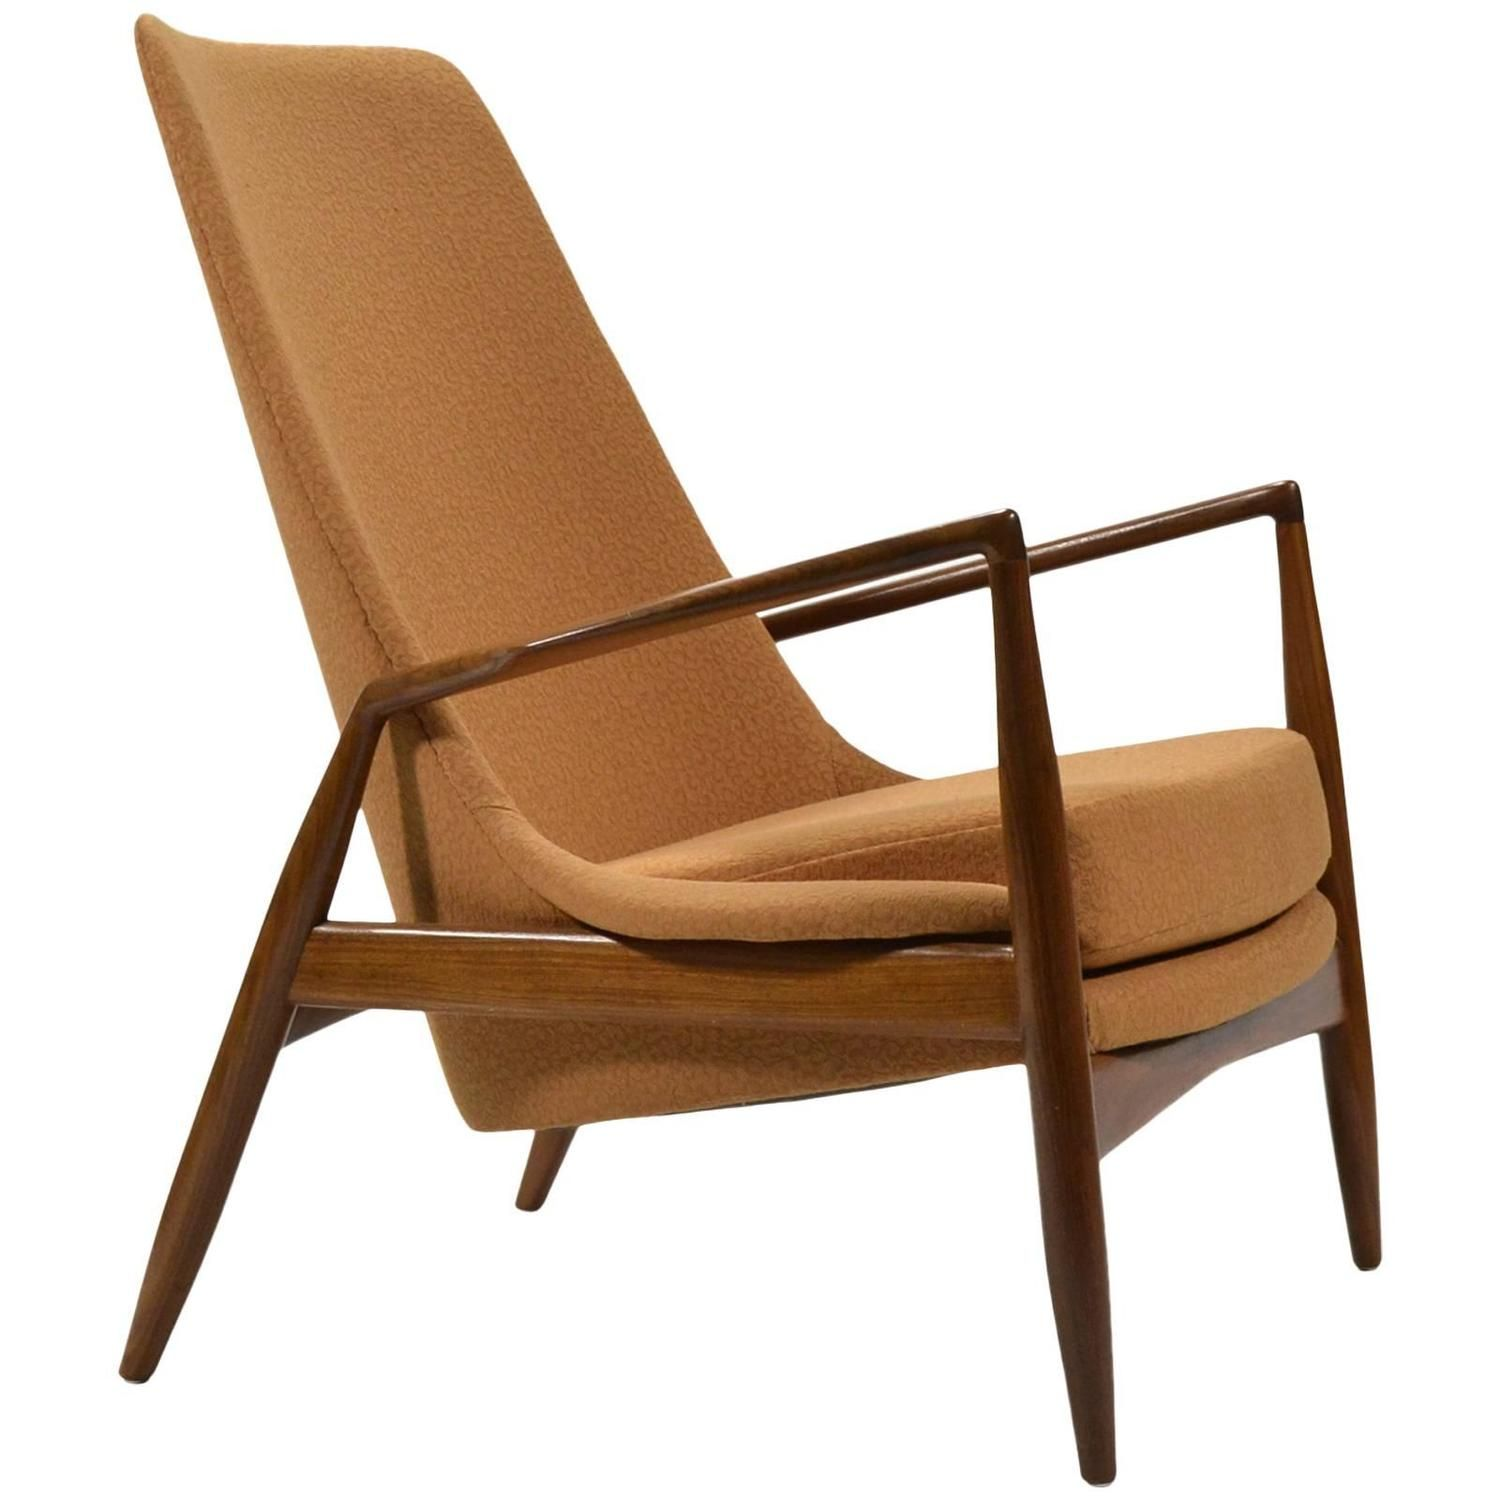 This sculptural pair of lounge chairs by ib kofod larsen is no longer - Ib Kofod Larsen High Back Seal Chair 1